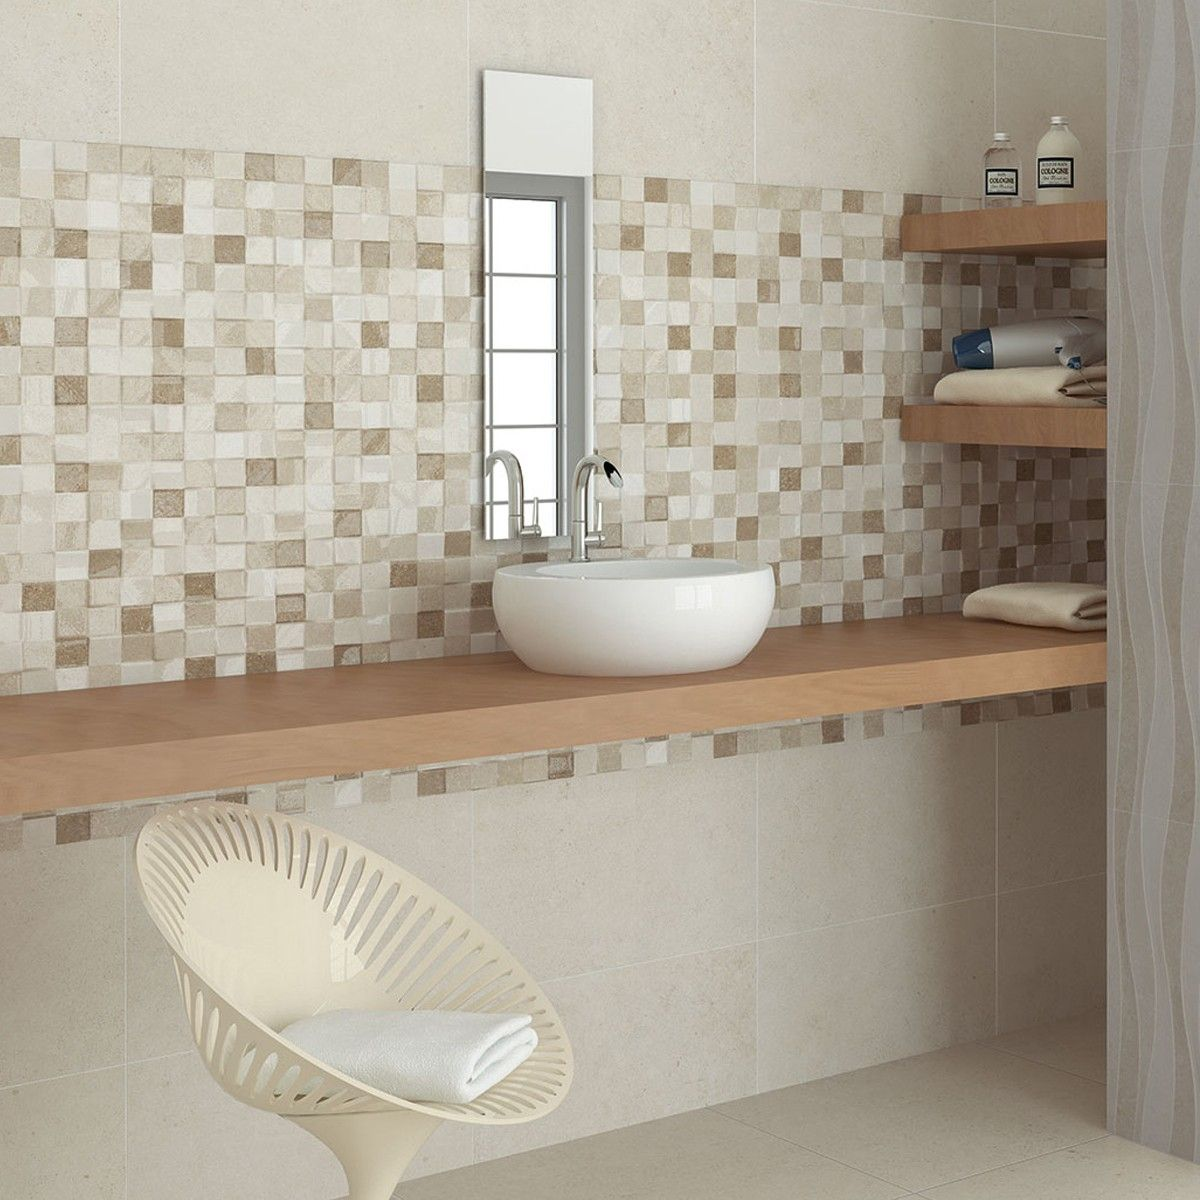 55x33 3 Adelaide Beige Mosaic Bathroom Wall Tiles Wall Tiles Tile Choice Spa Pinterest